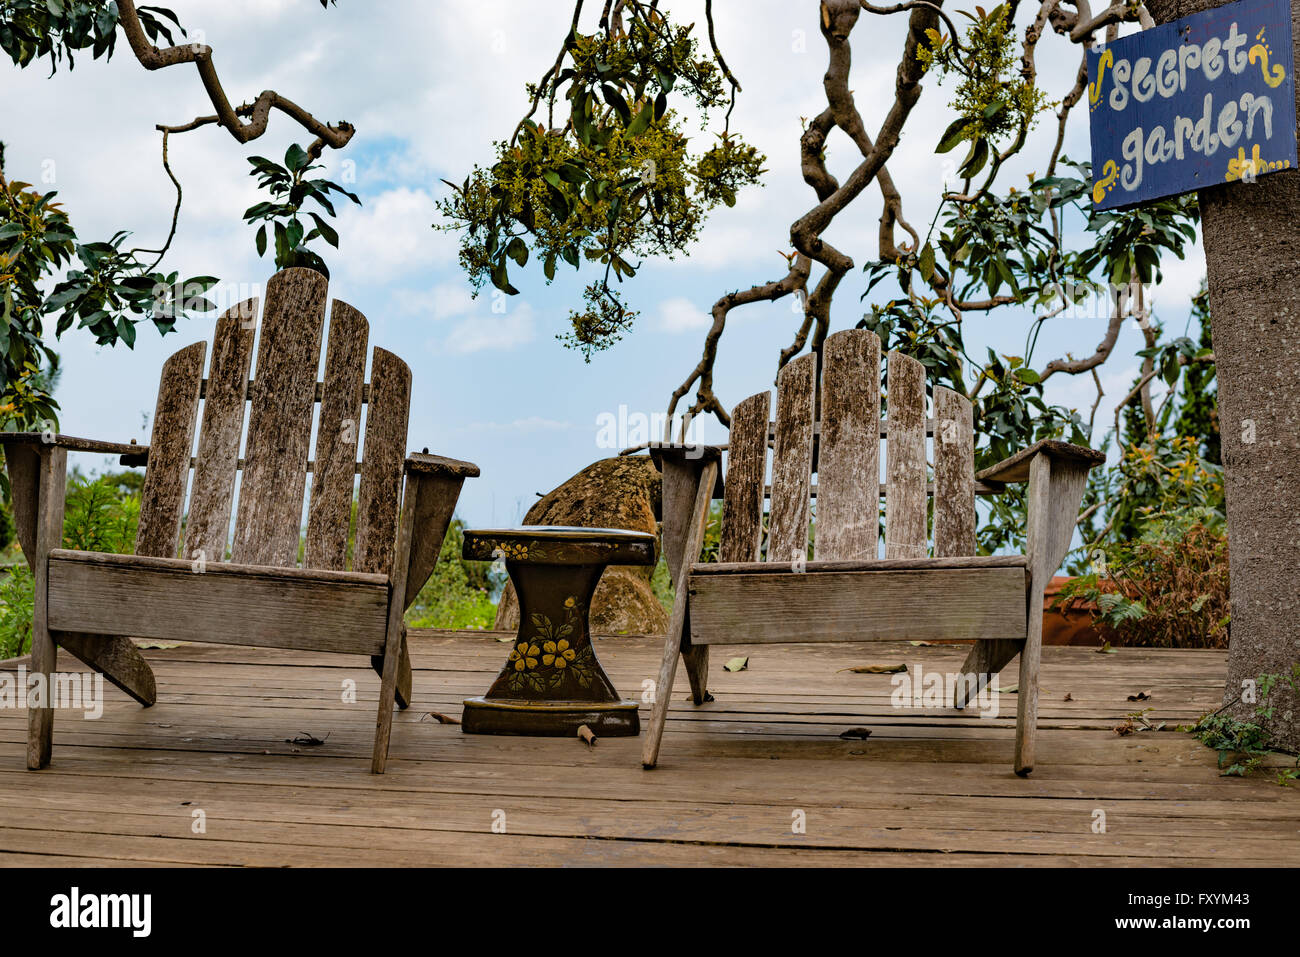 Wondrous A Pair Of Weathered Chairs In A Garden On The Island Of Maui Interior Design Ideas Clesiryabchikinfo